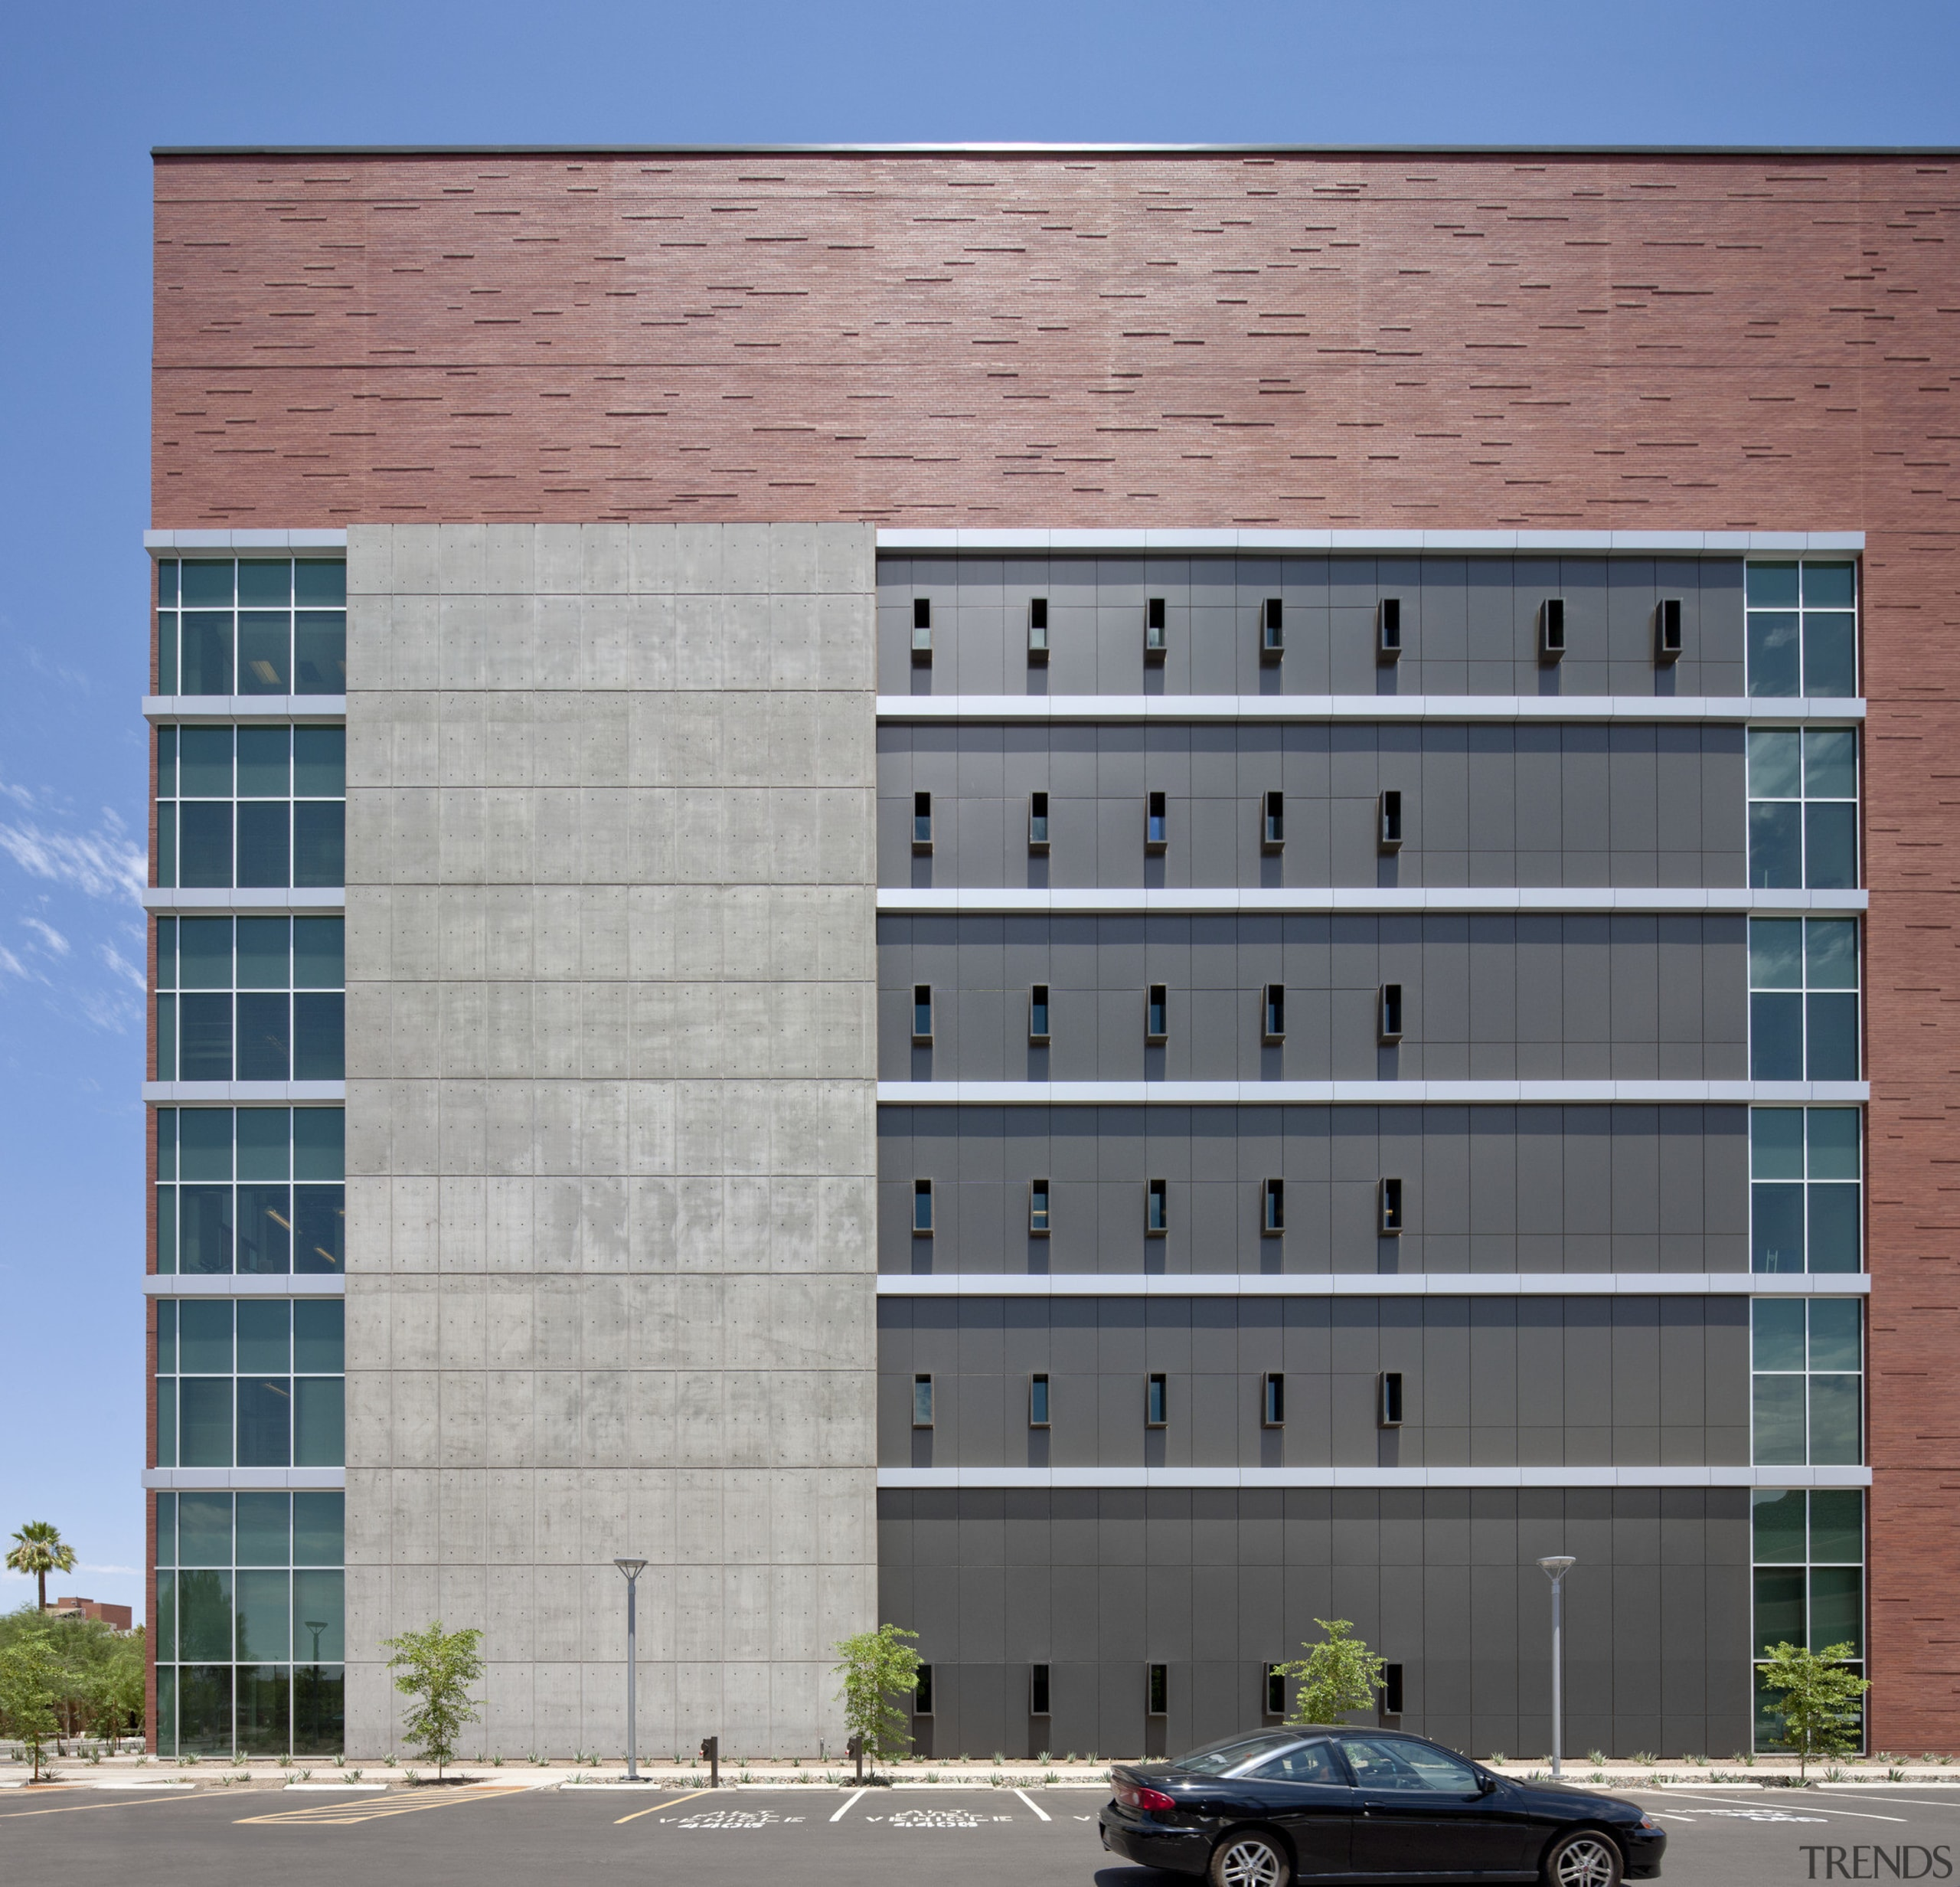 Arizona State University Interdisciplinary Science and Technology Building apartment, architecture, building, commercial building, condominium, corporate headquarters, daytime, elevation, facade, headquarters, metropolitan area, mixed use, real estate, residential area, window, gray